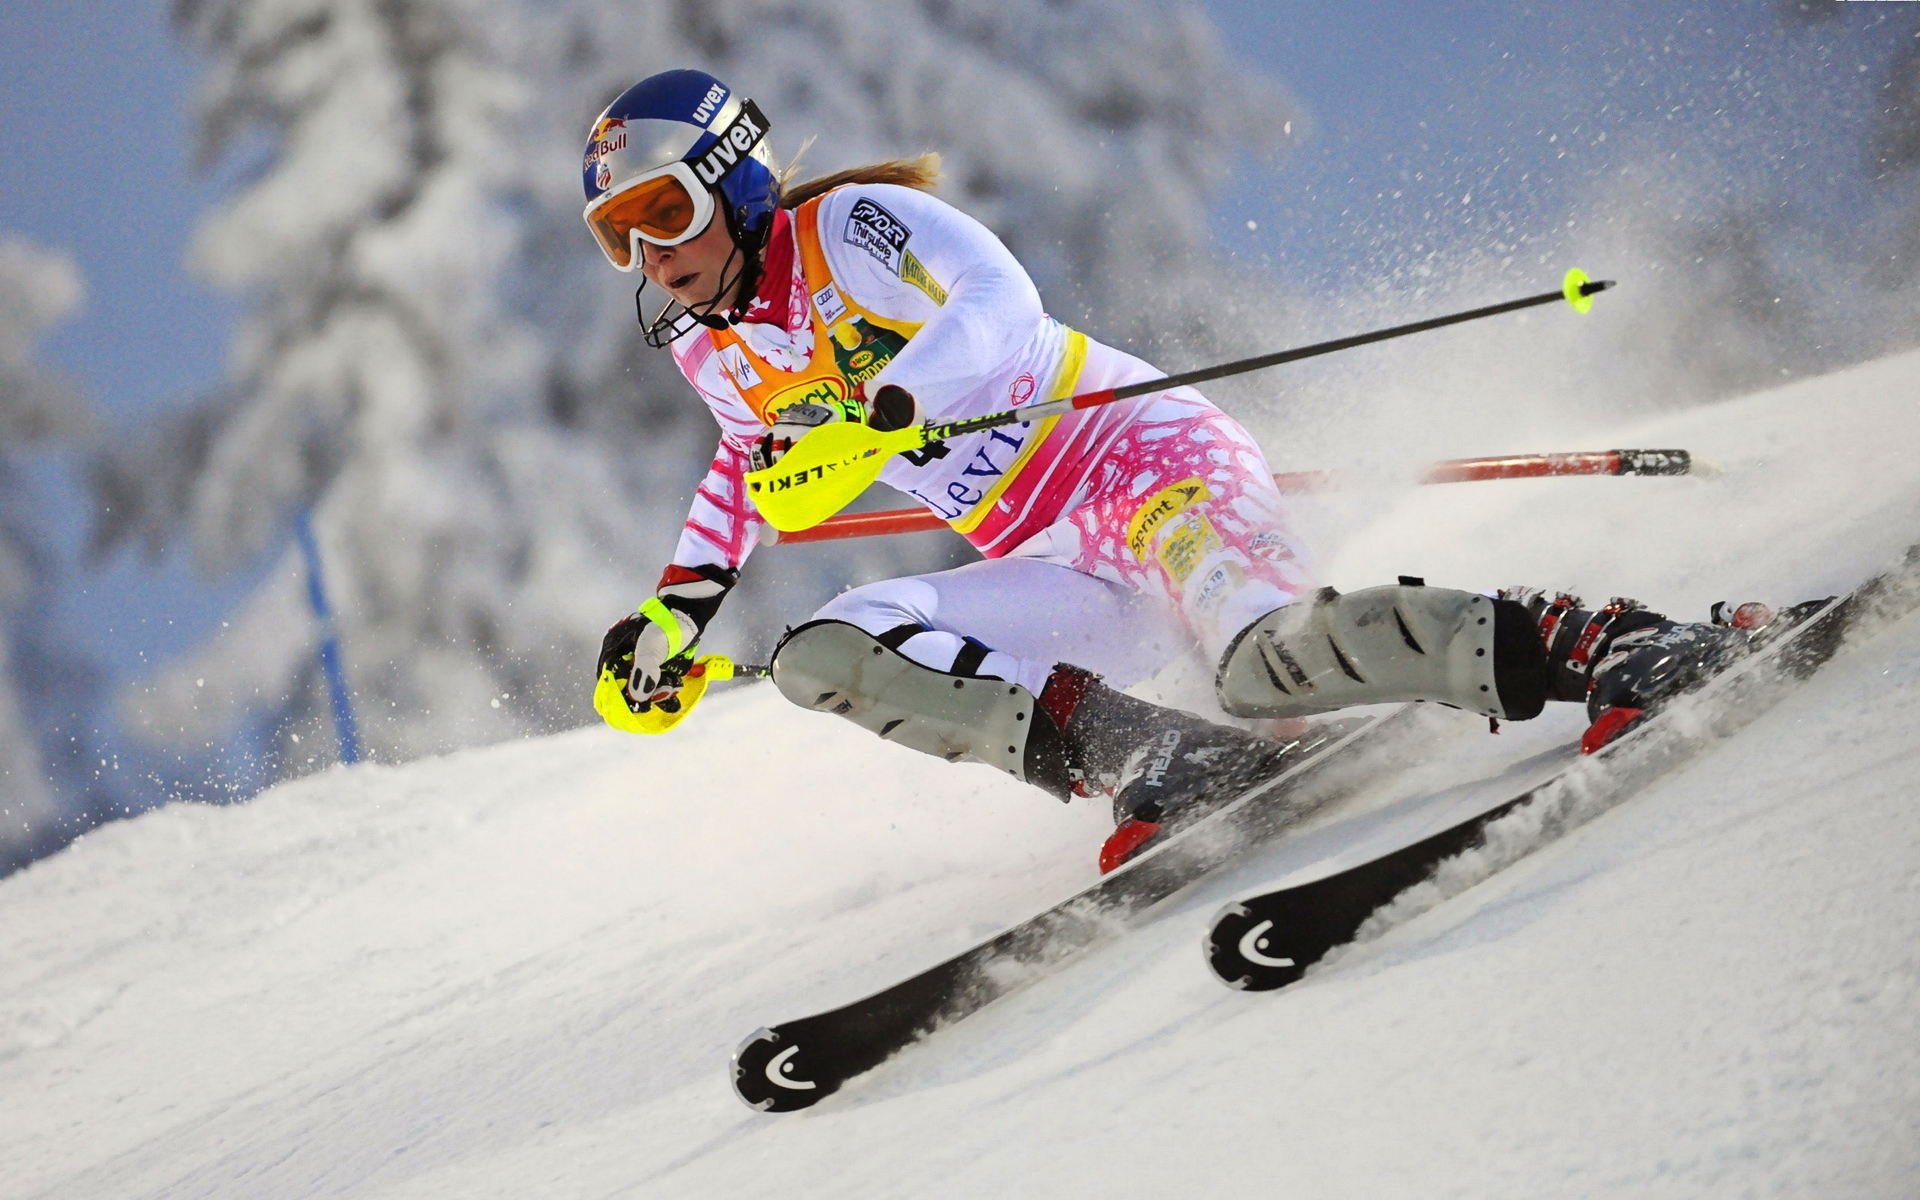 woman ski athlet racing with yellow gloves